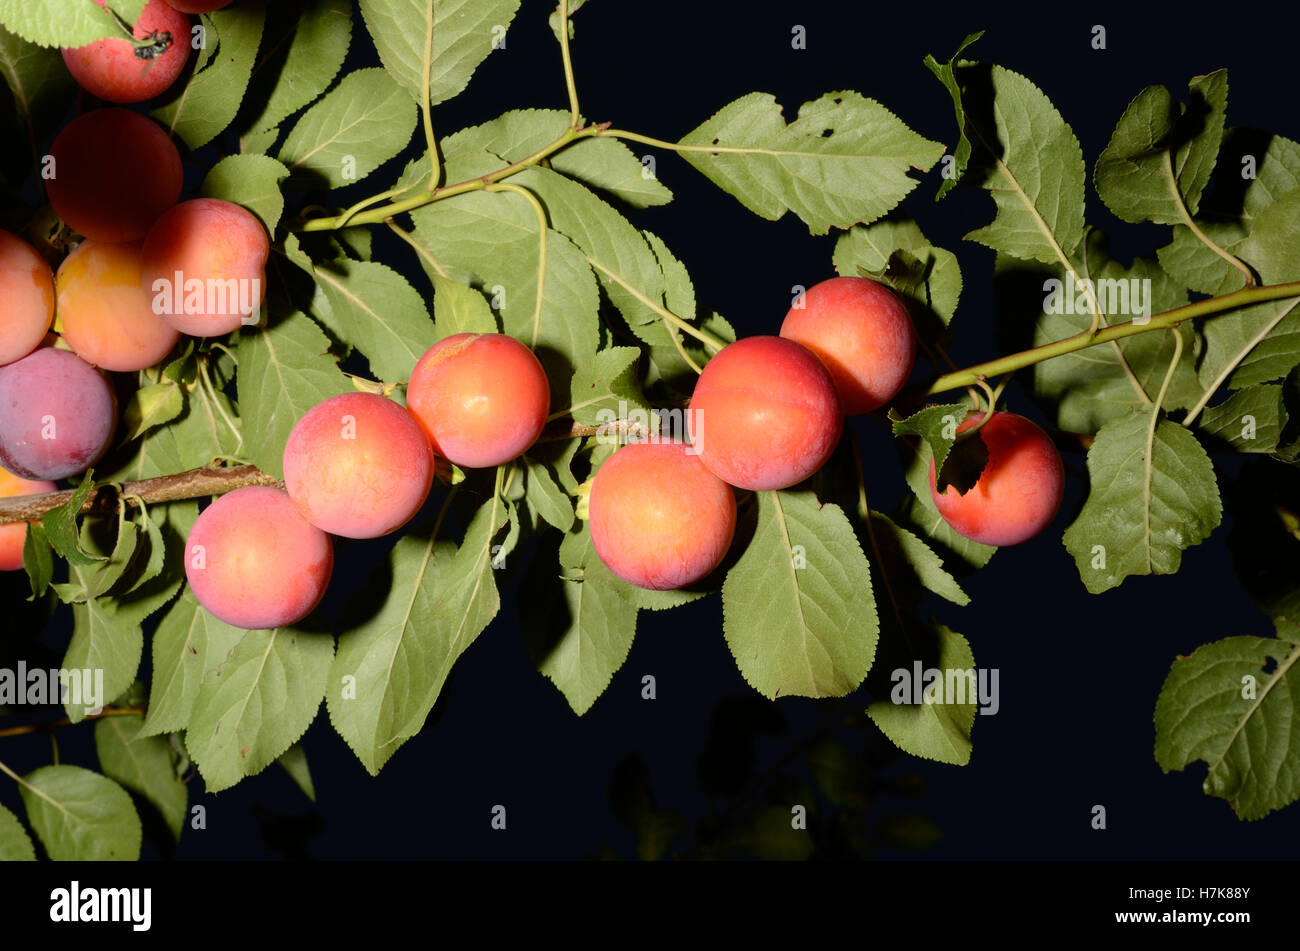 Very clearly seen fruits of the prune tree. High resolution image, taken with flash. - Stock Image